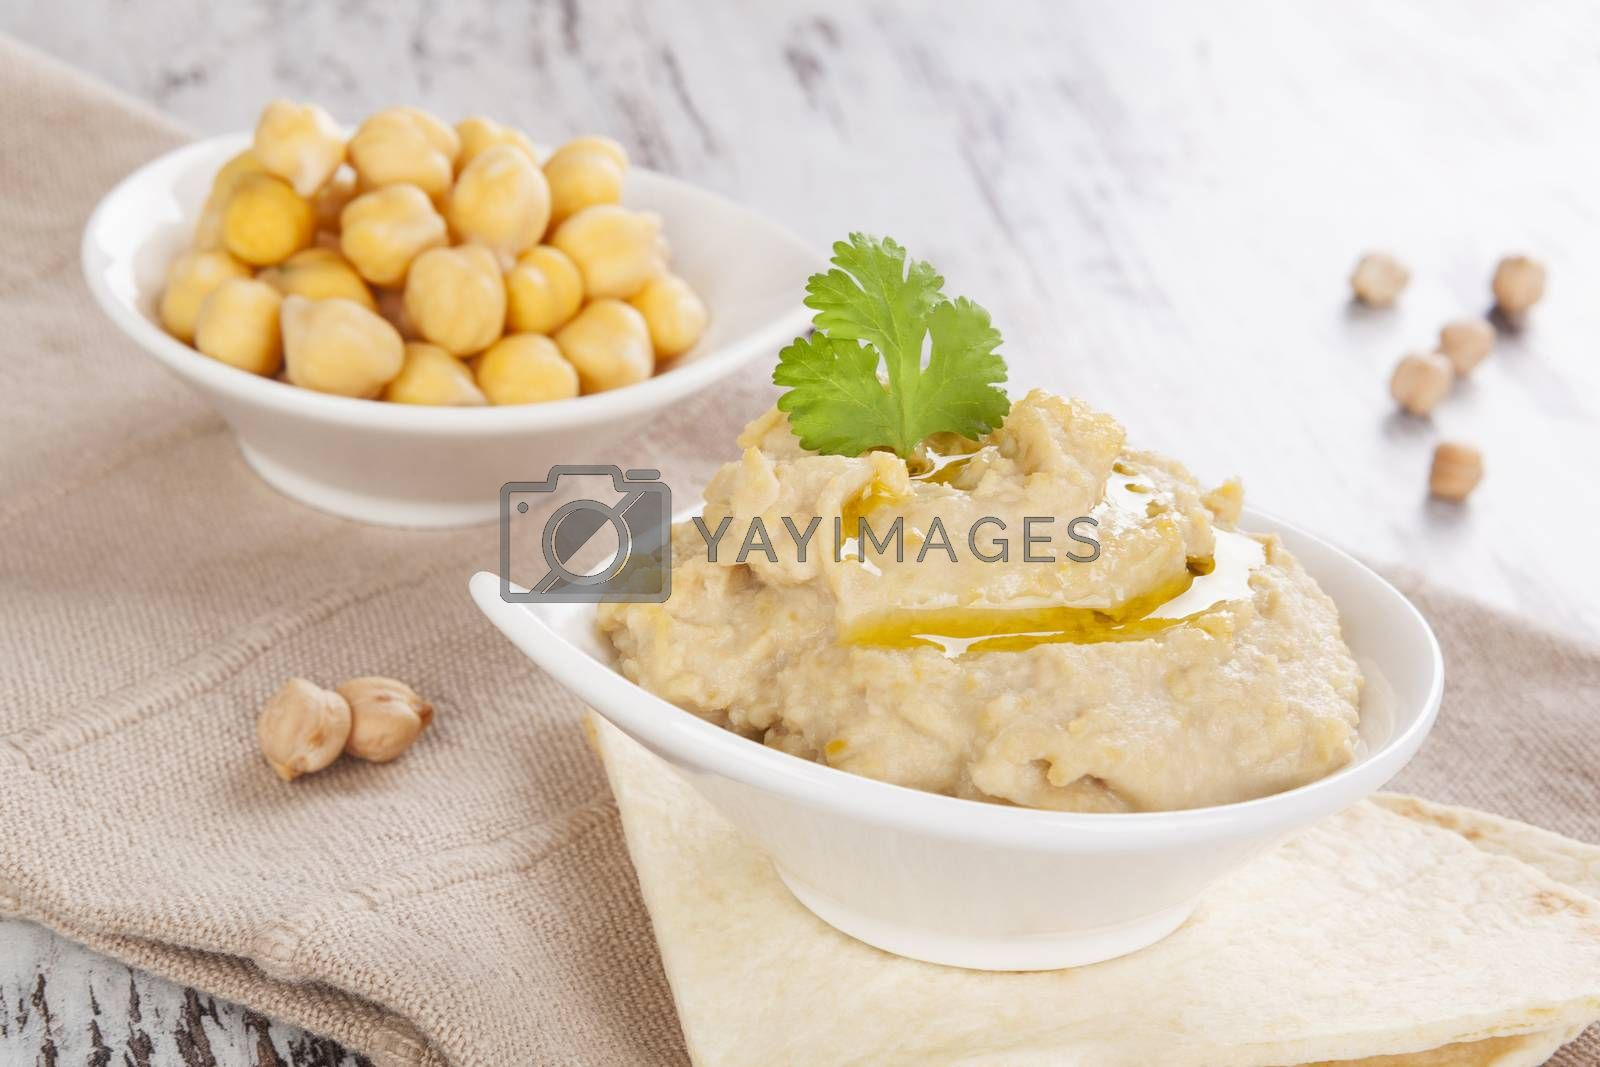 Delicious hummus and cooked chickpeas in bowl on white wooden background. Culinary hummus eating, mediterranean rustic style.